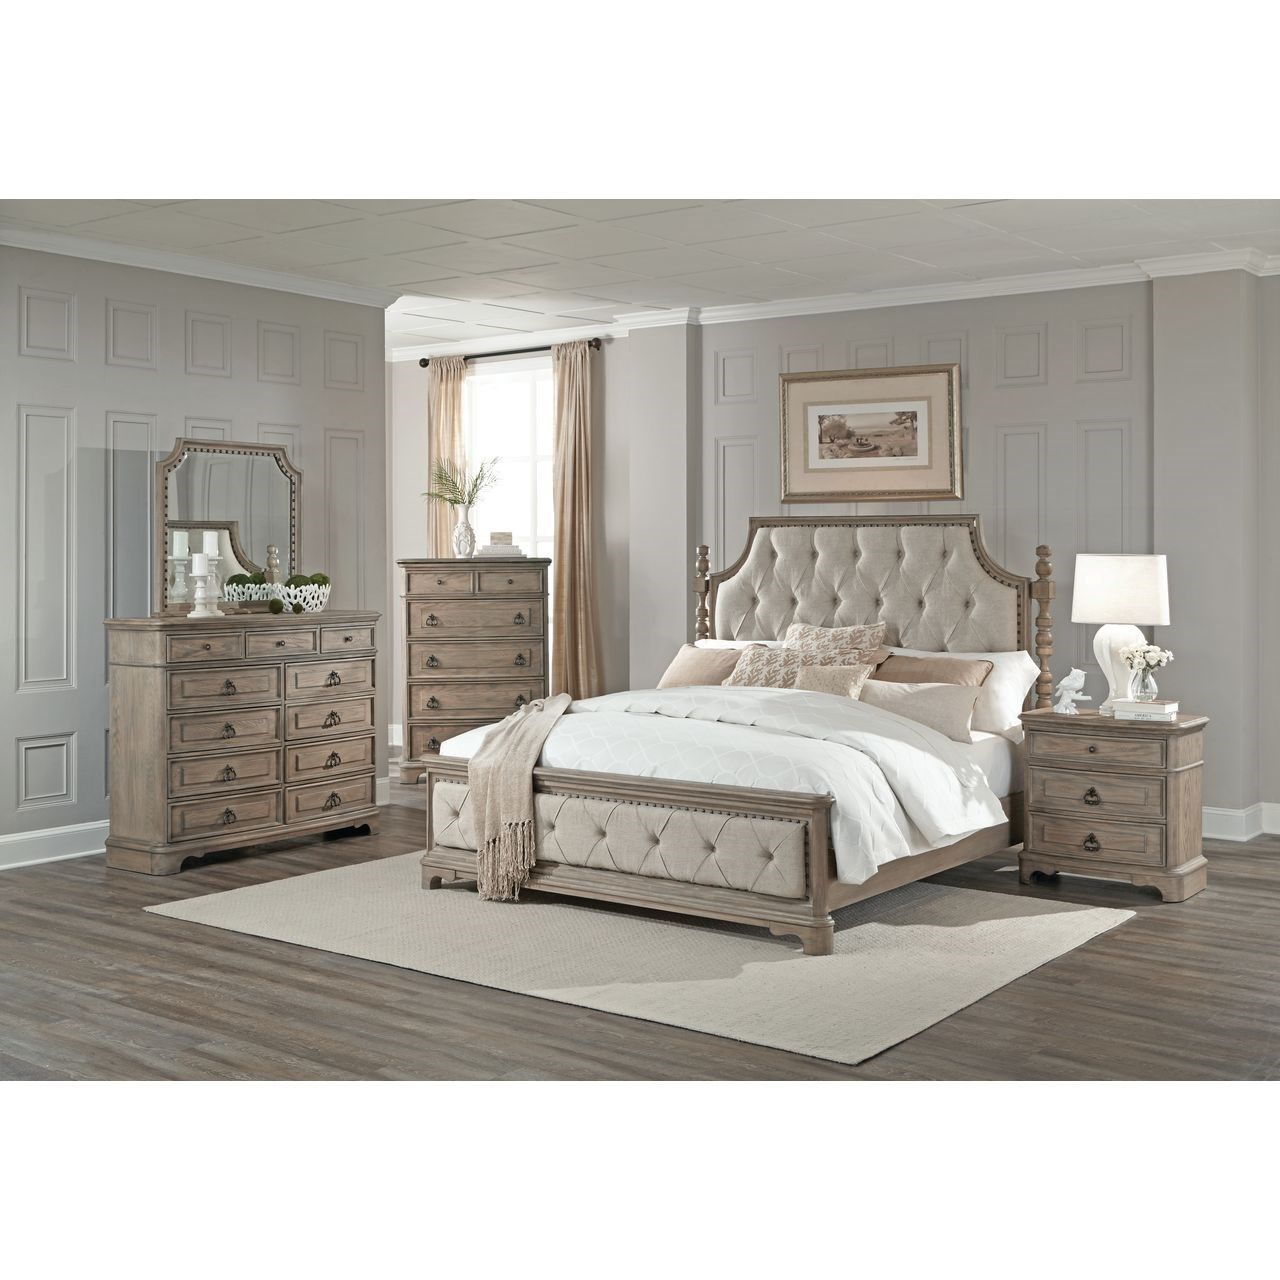 Lifestyle Pearl Upholstered Queen Bed With Diamond Tufting